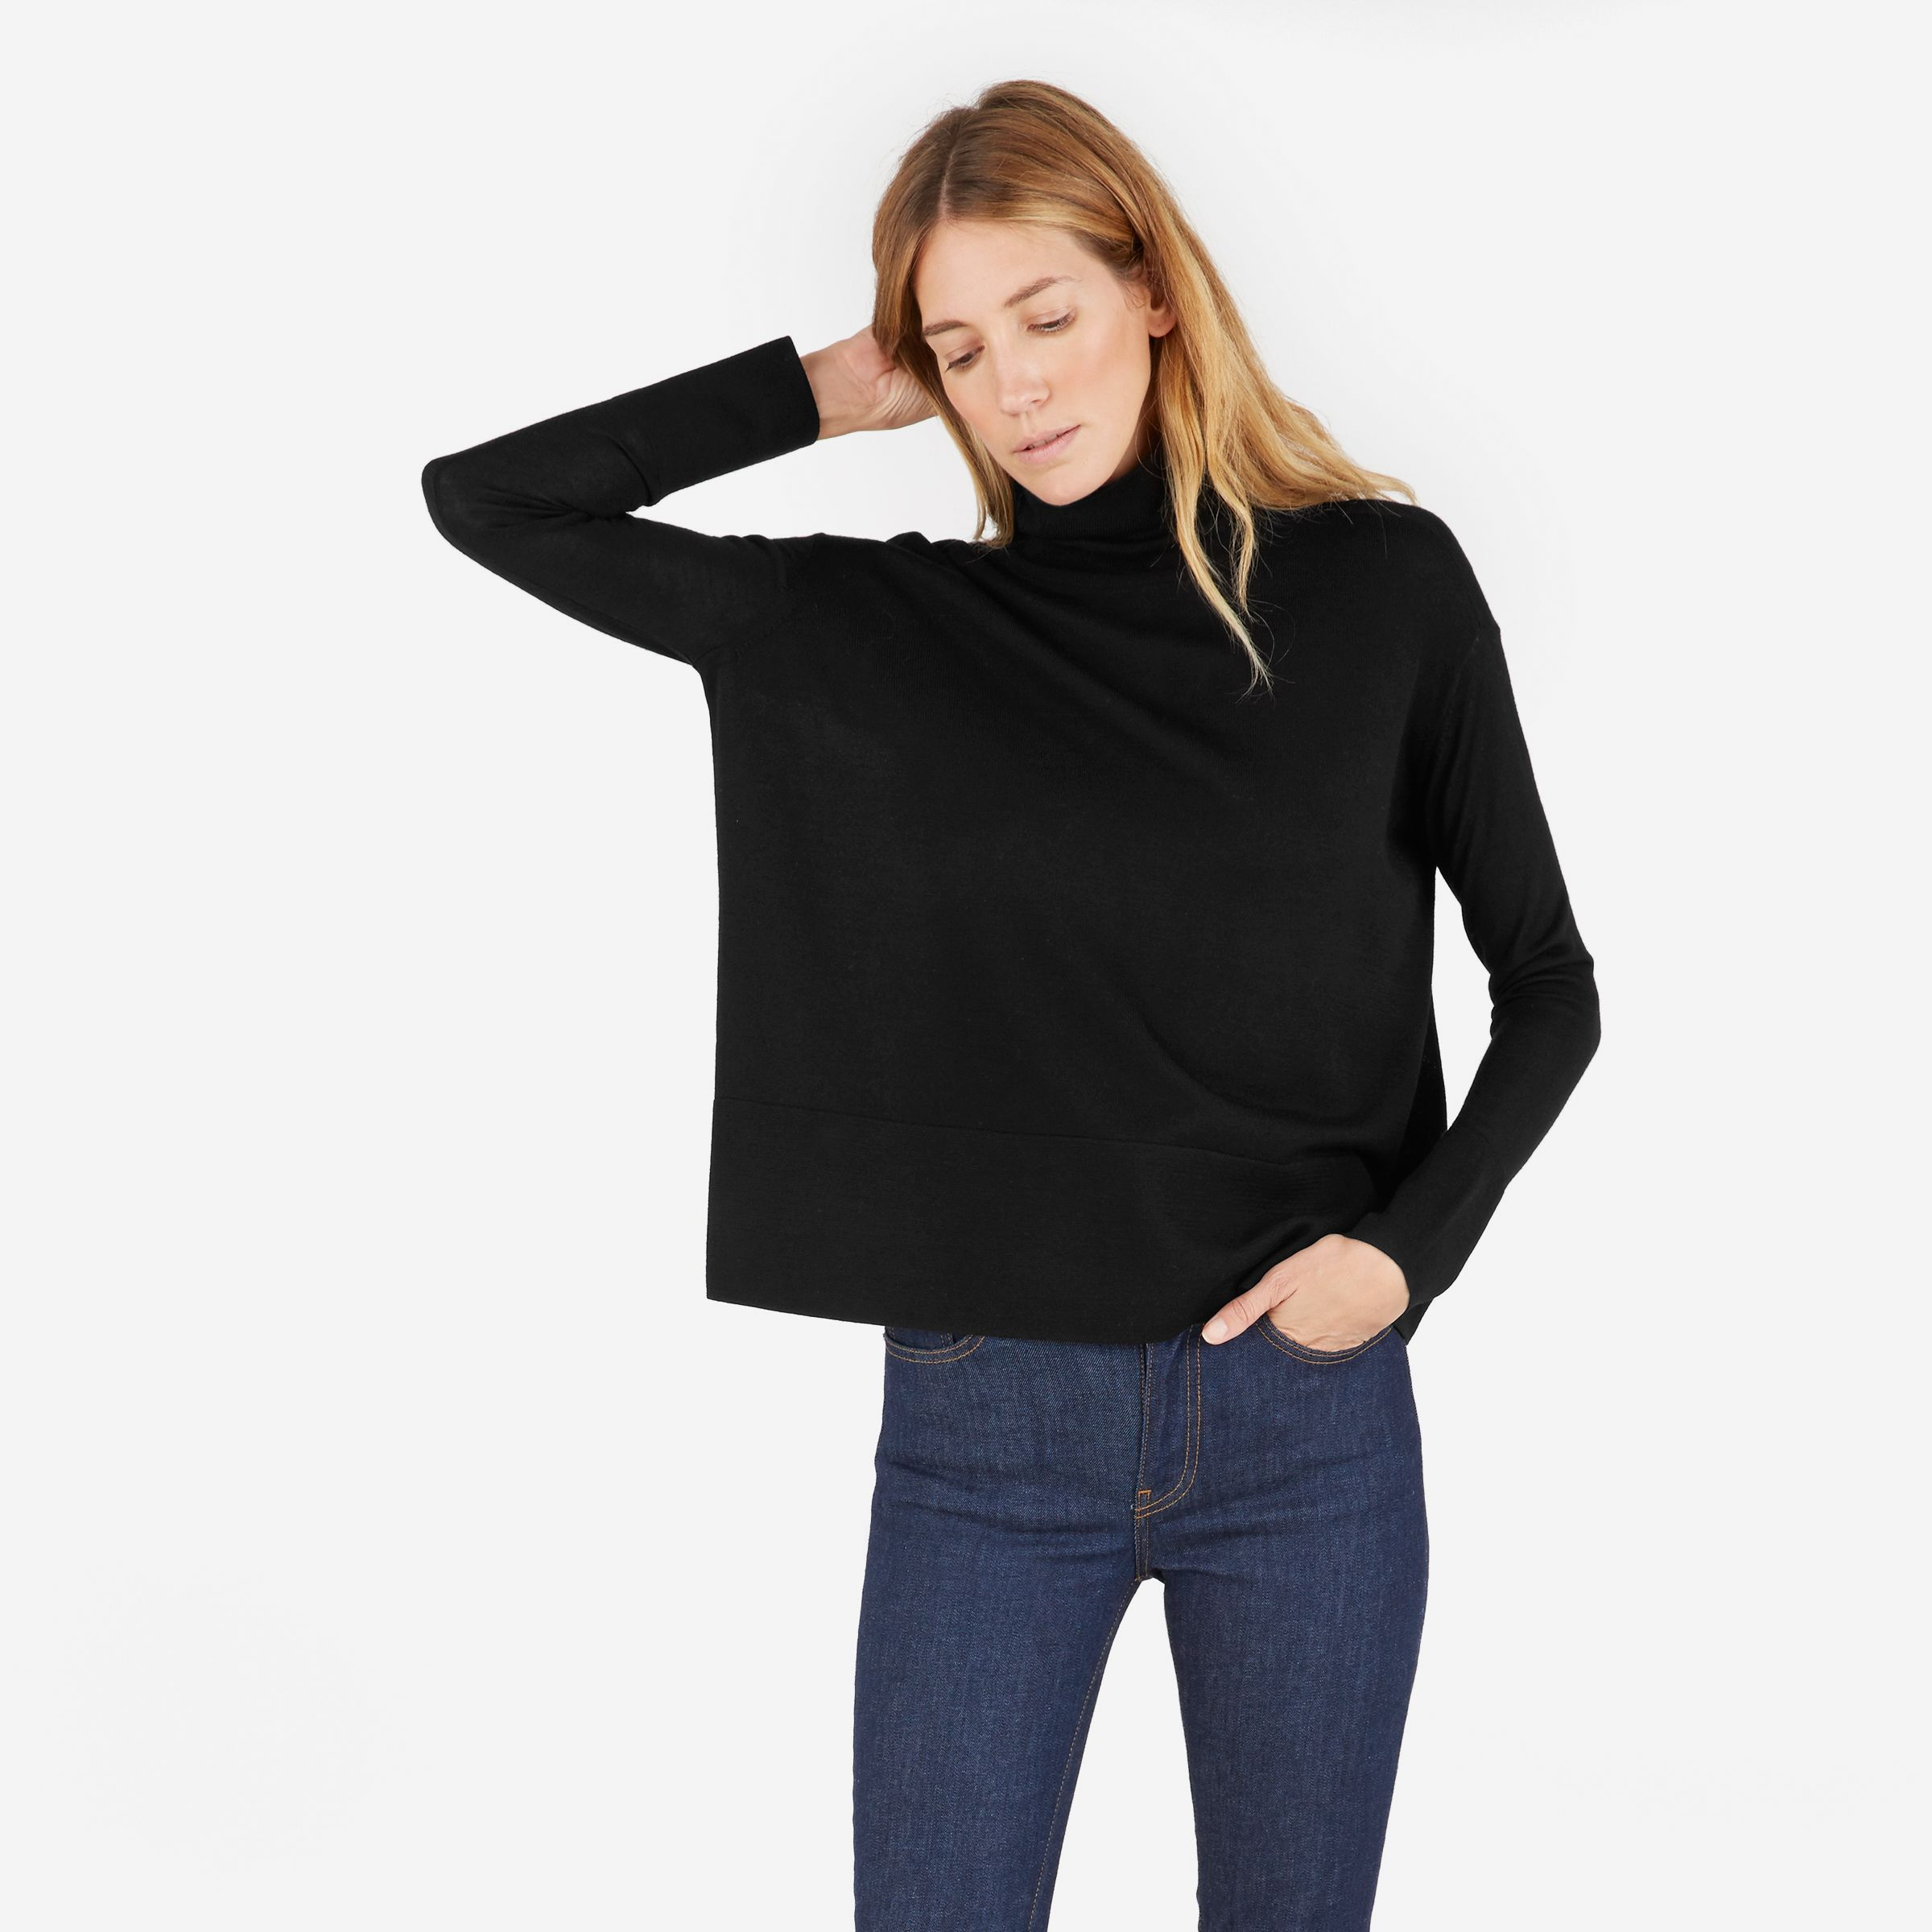 The Luxe Wool Square Turtleneck | Products, Turtlenecks and 39;s